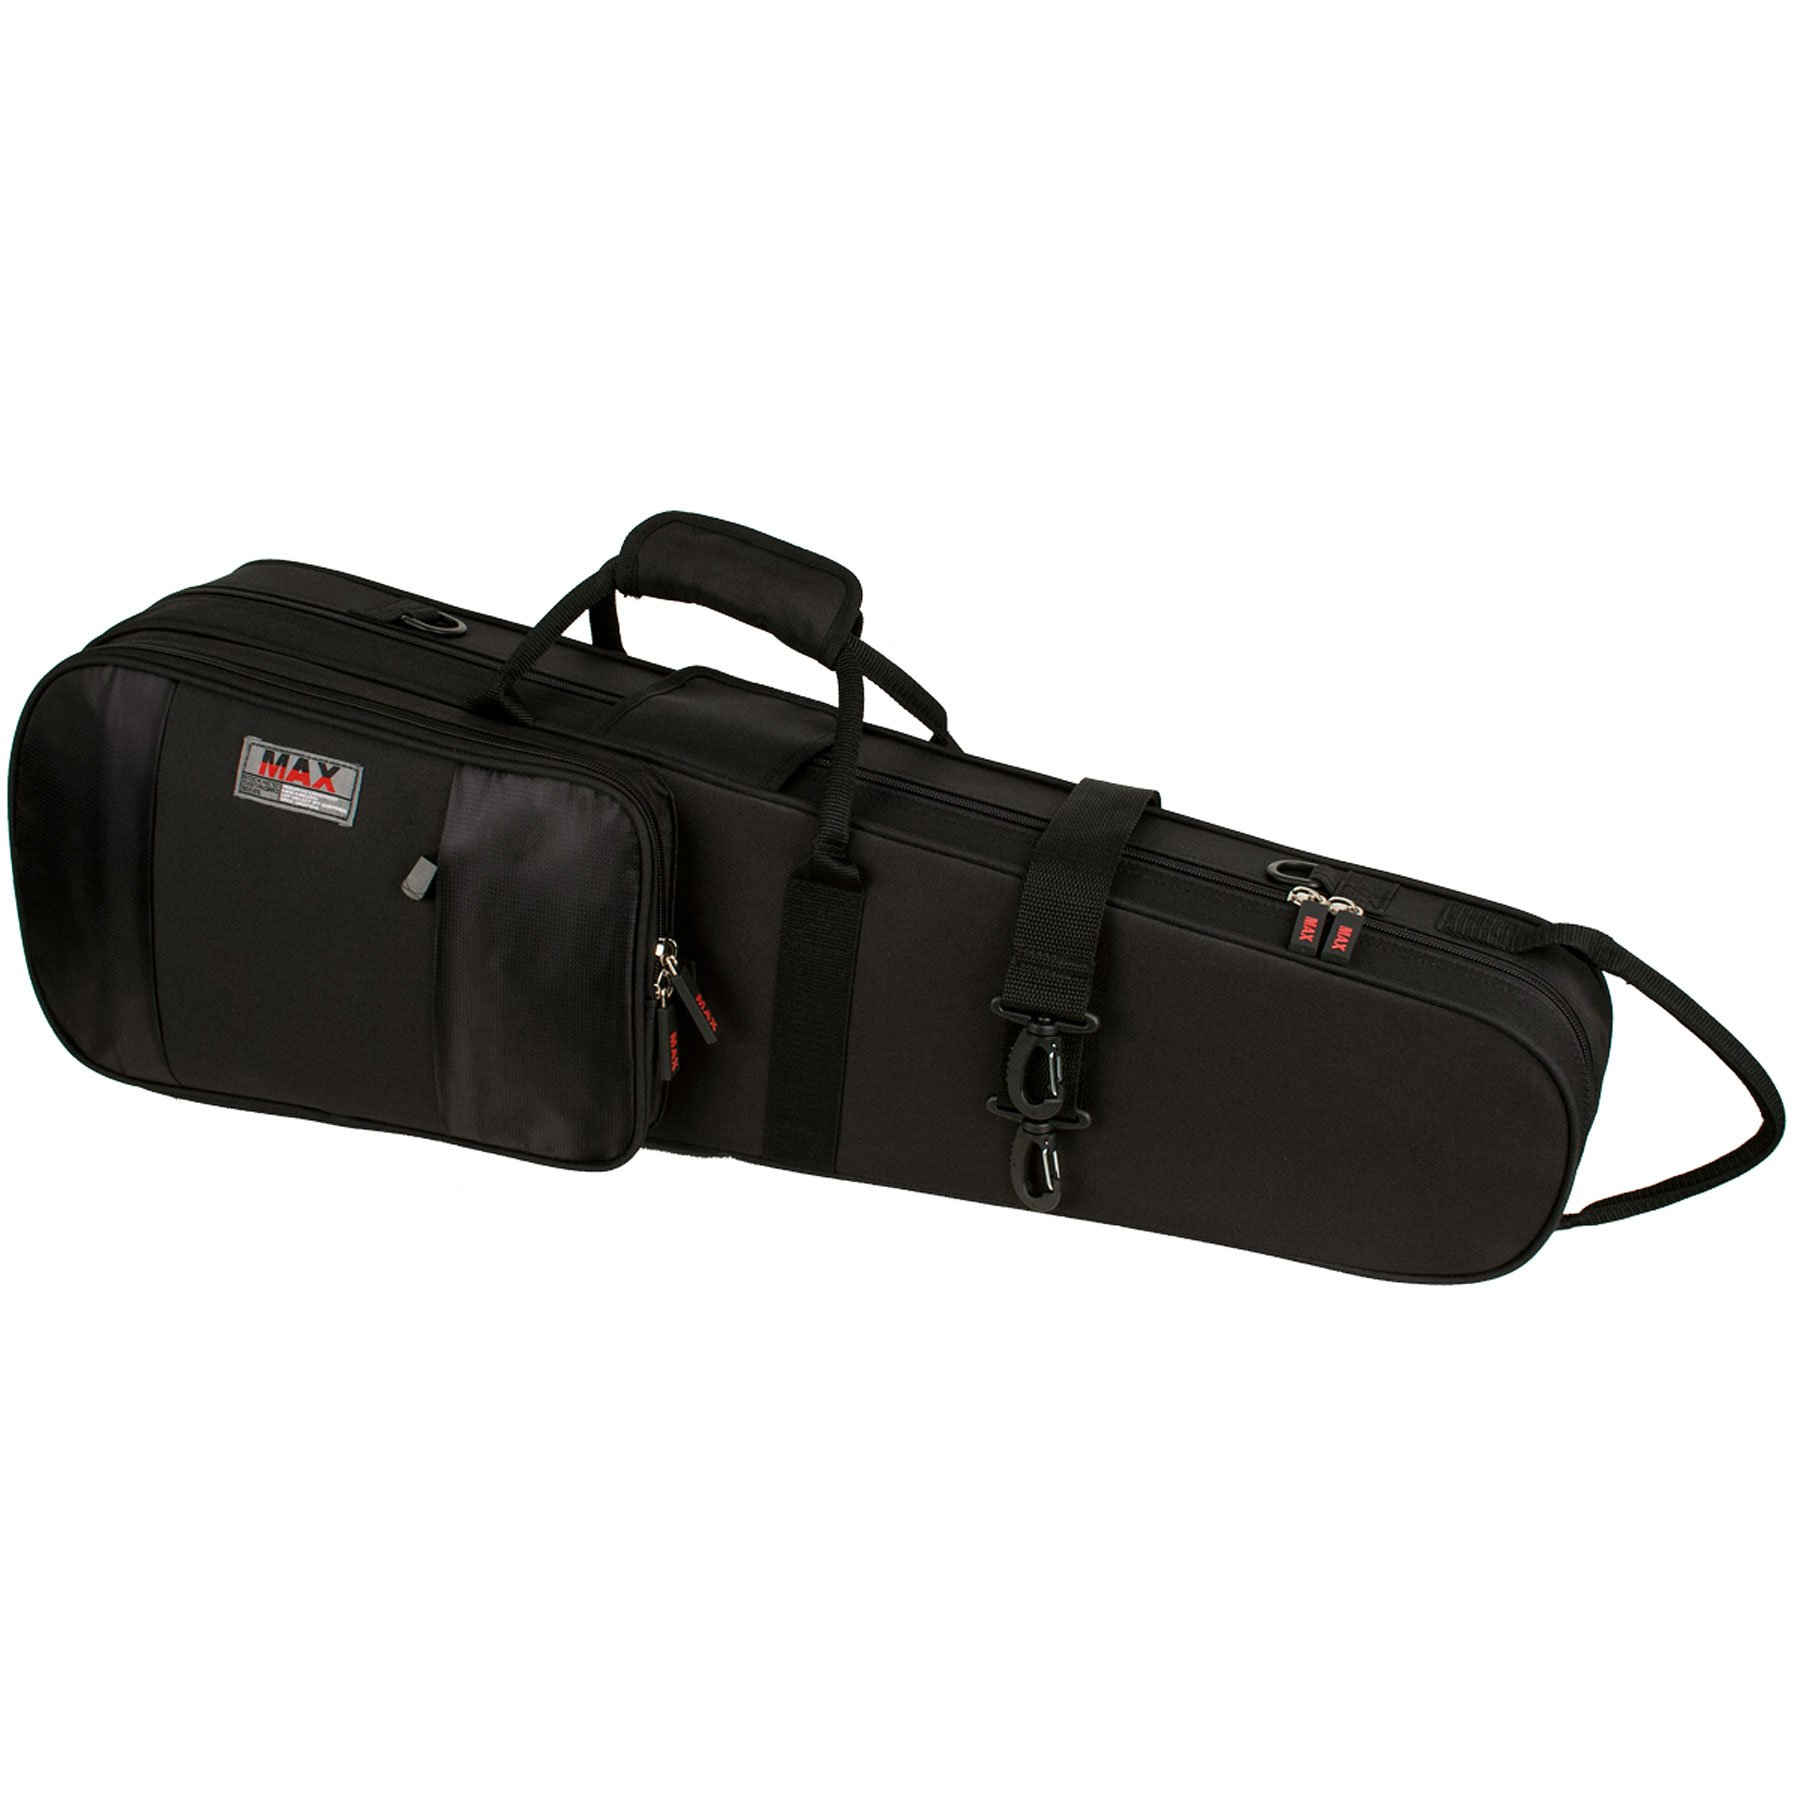 Protec MX044 4/4 Violin Shaped MAX Case, Black by ProTec (Image #1)